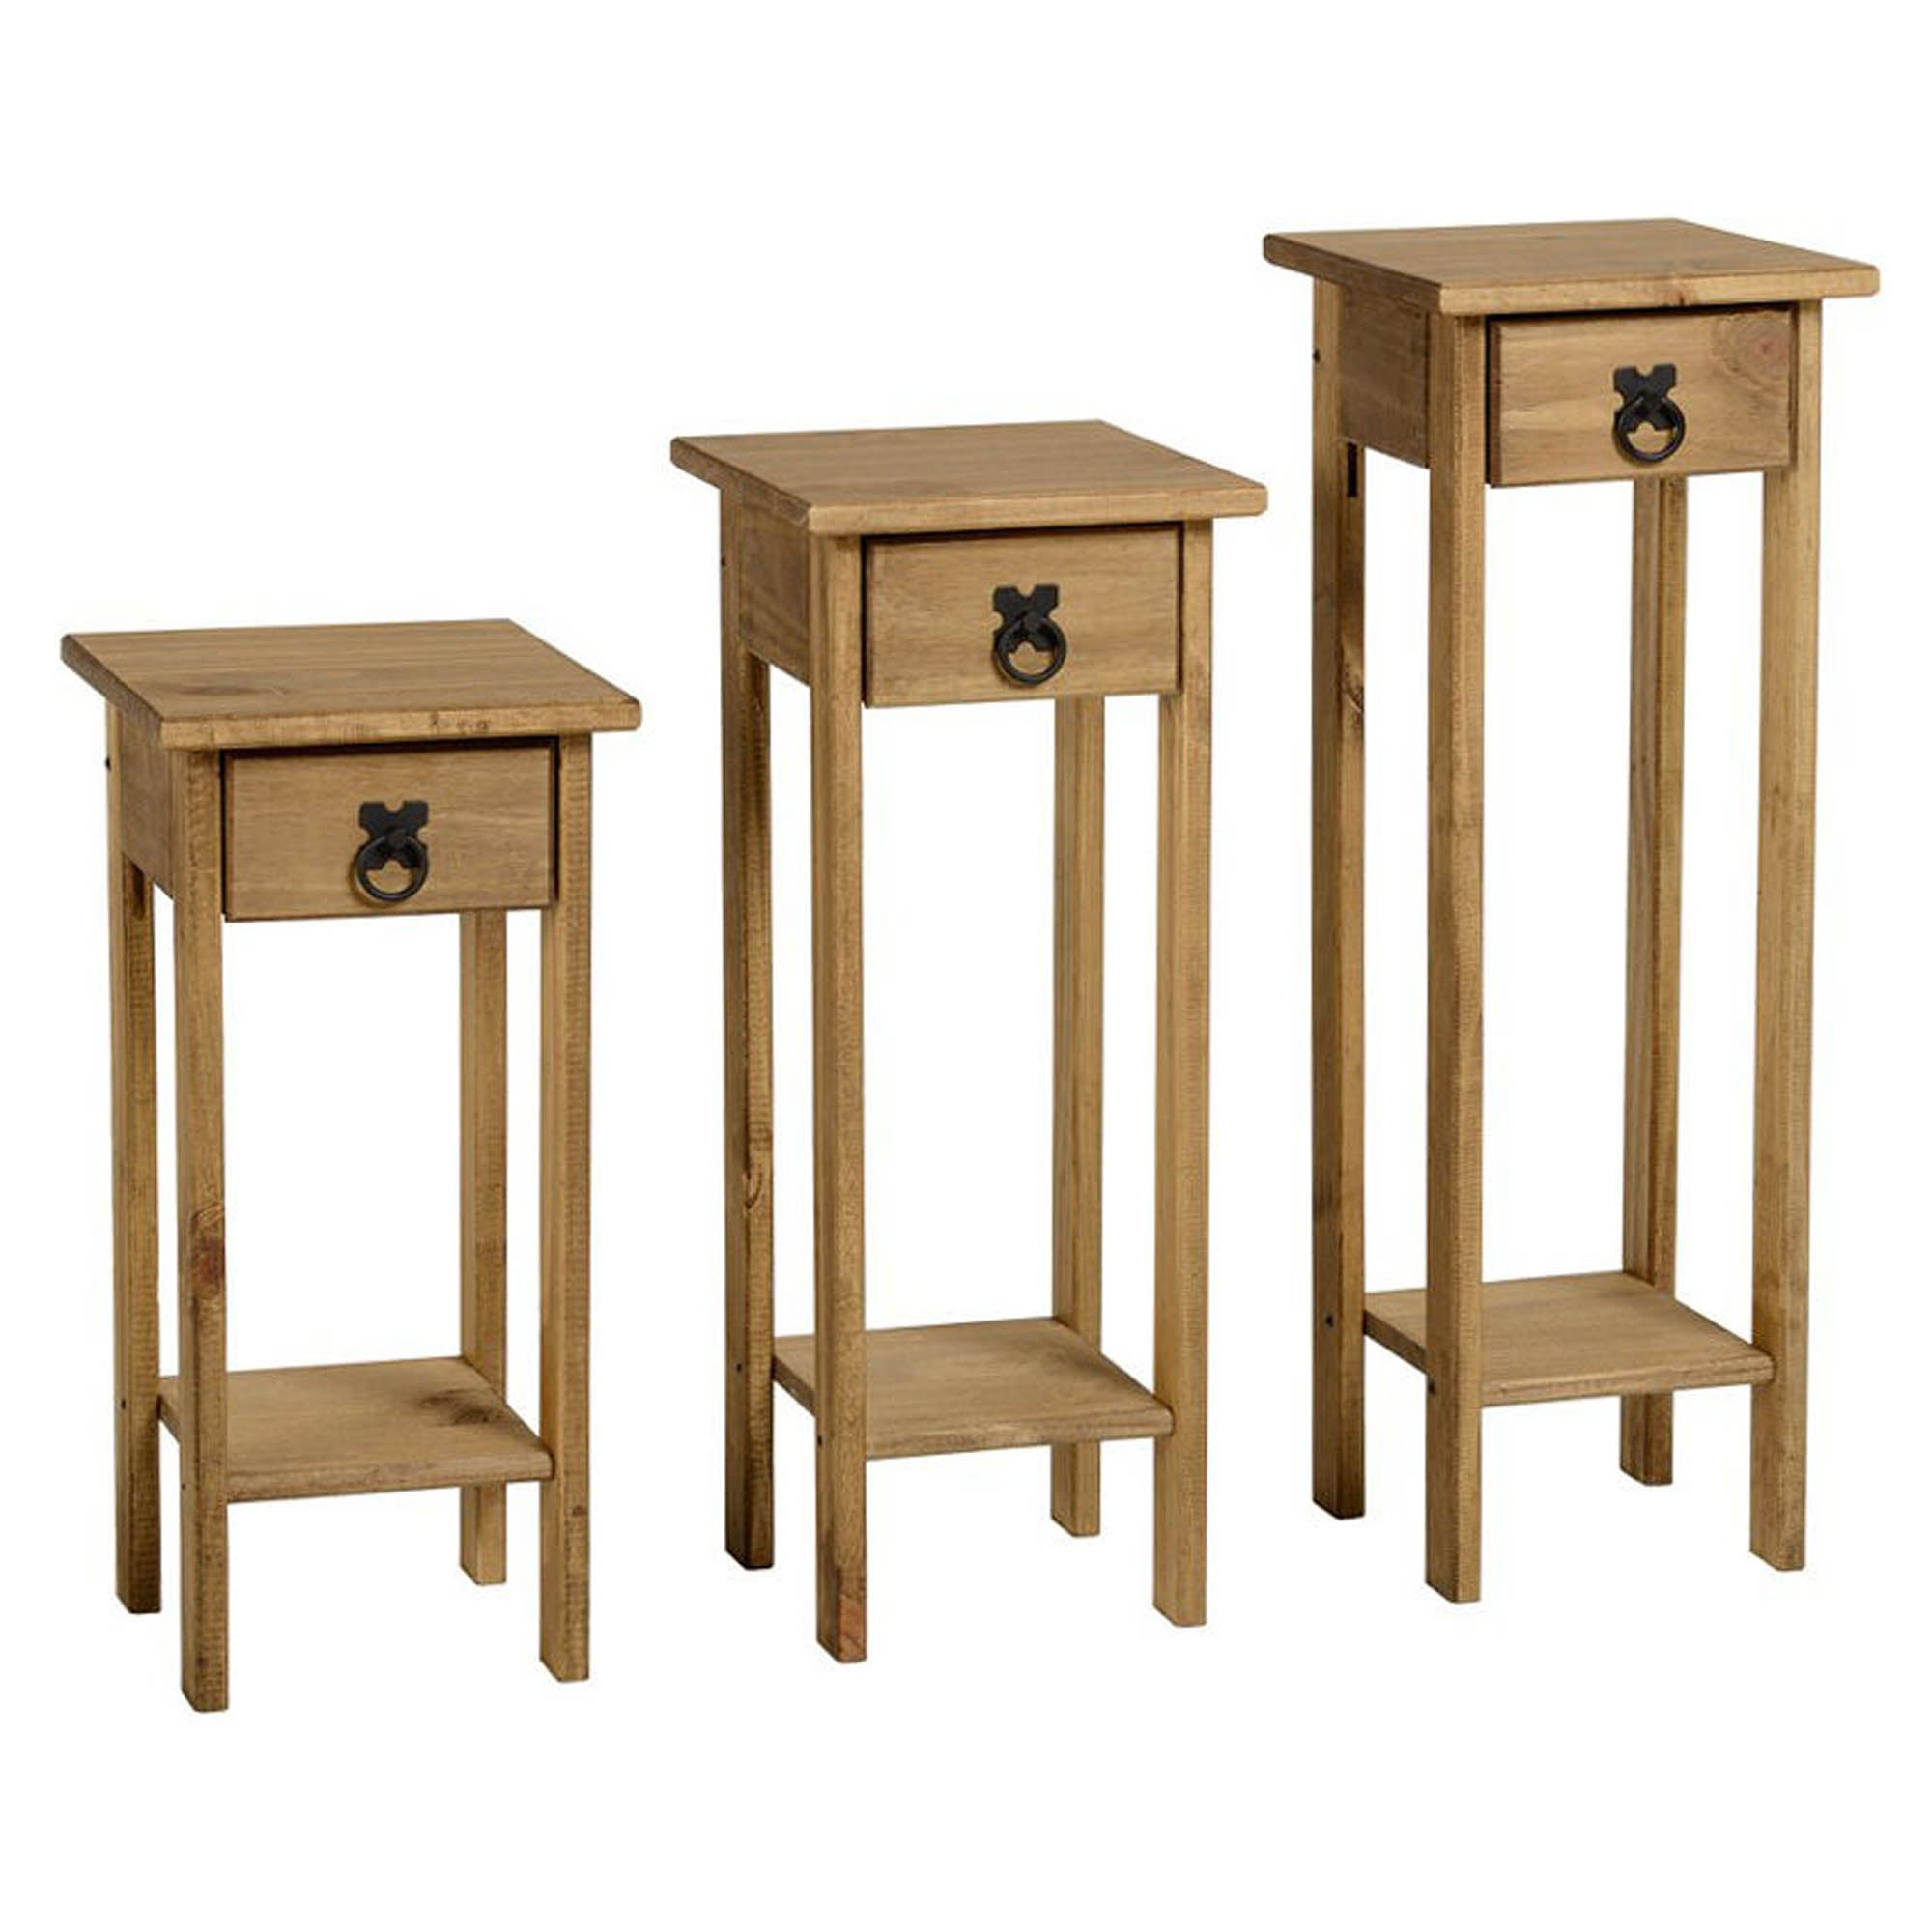 Image of Corona Pine Set of 3 Plant Stands Natural